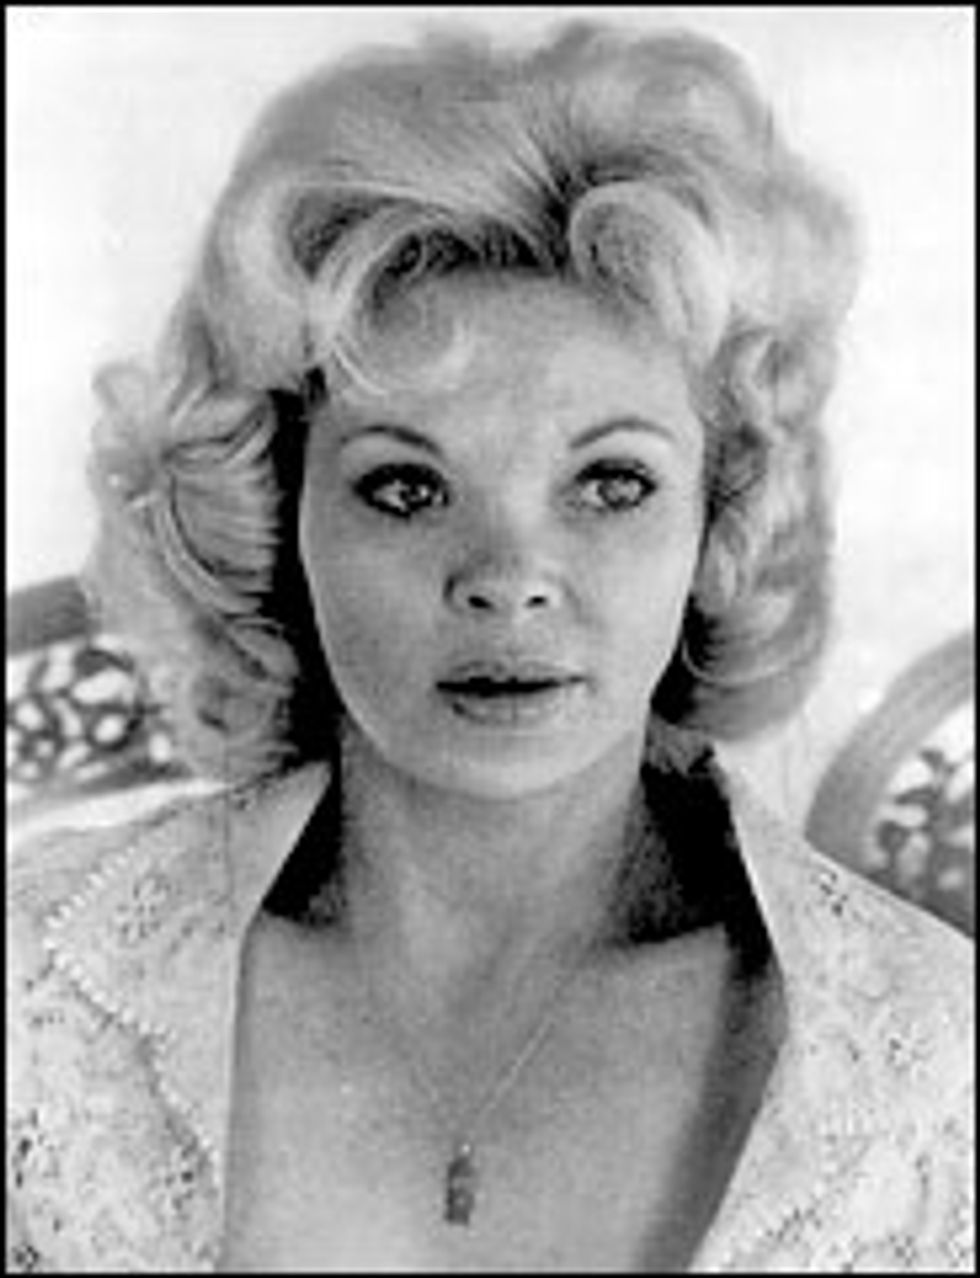 CANDY BARR RIP